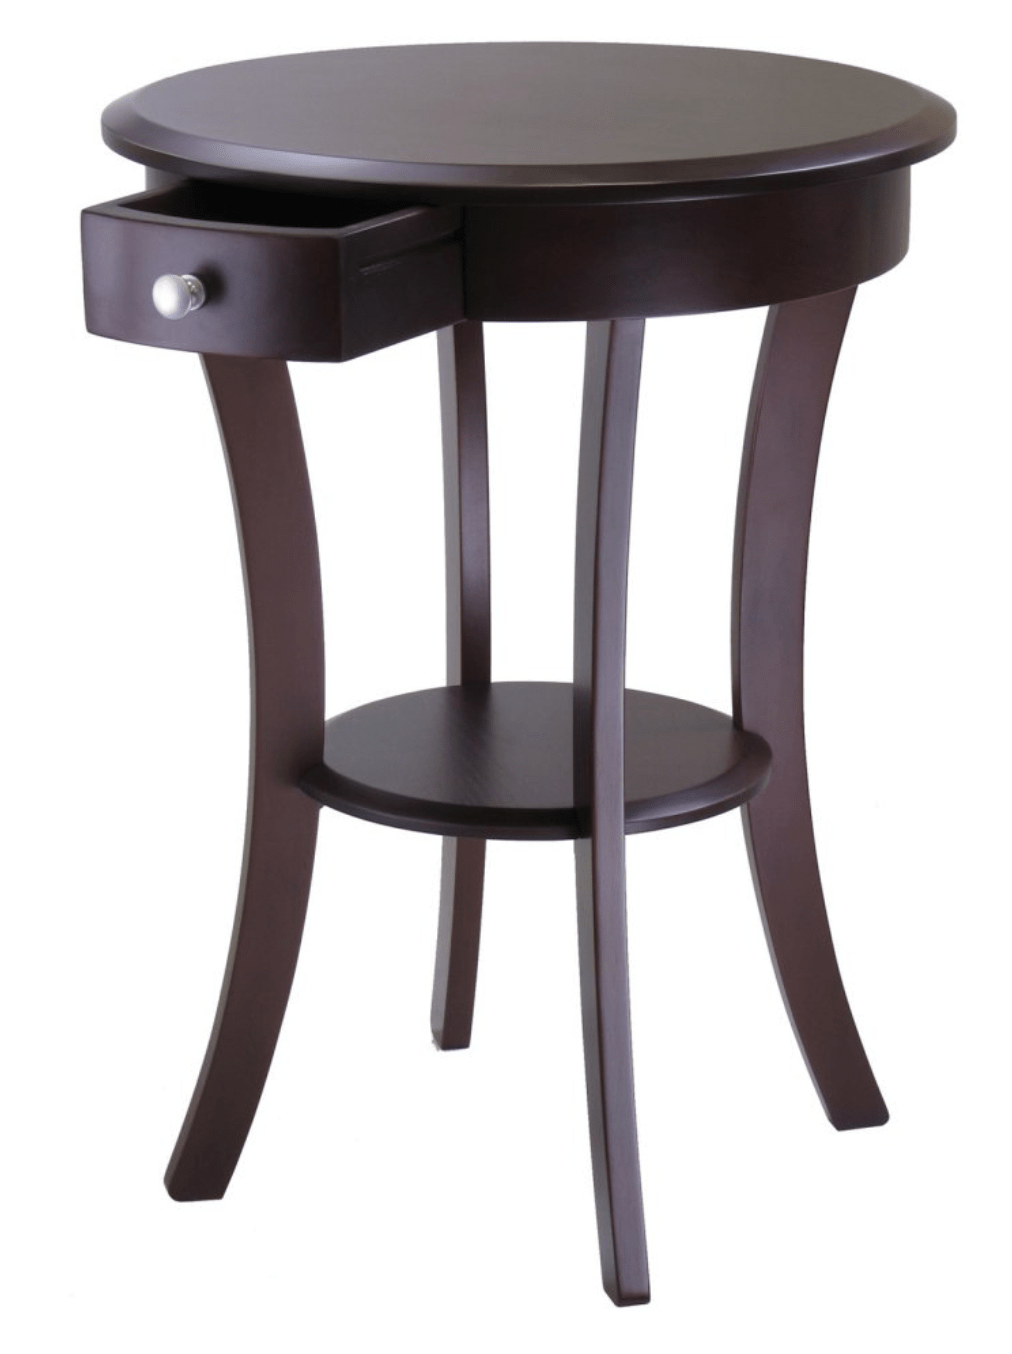 lovely small accent table for round wood min gray contemporary the bedroom kitchen wine cabinet blue foyer marble top bedside live edge walnut dark coffee lucite sofa nesting side